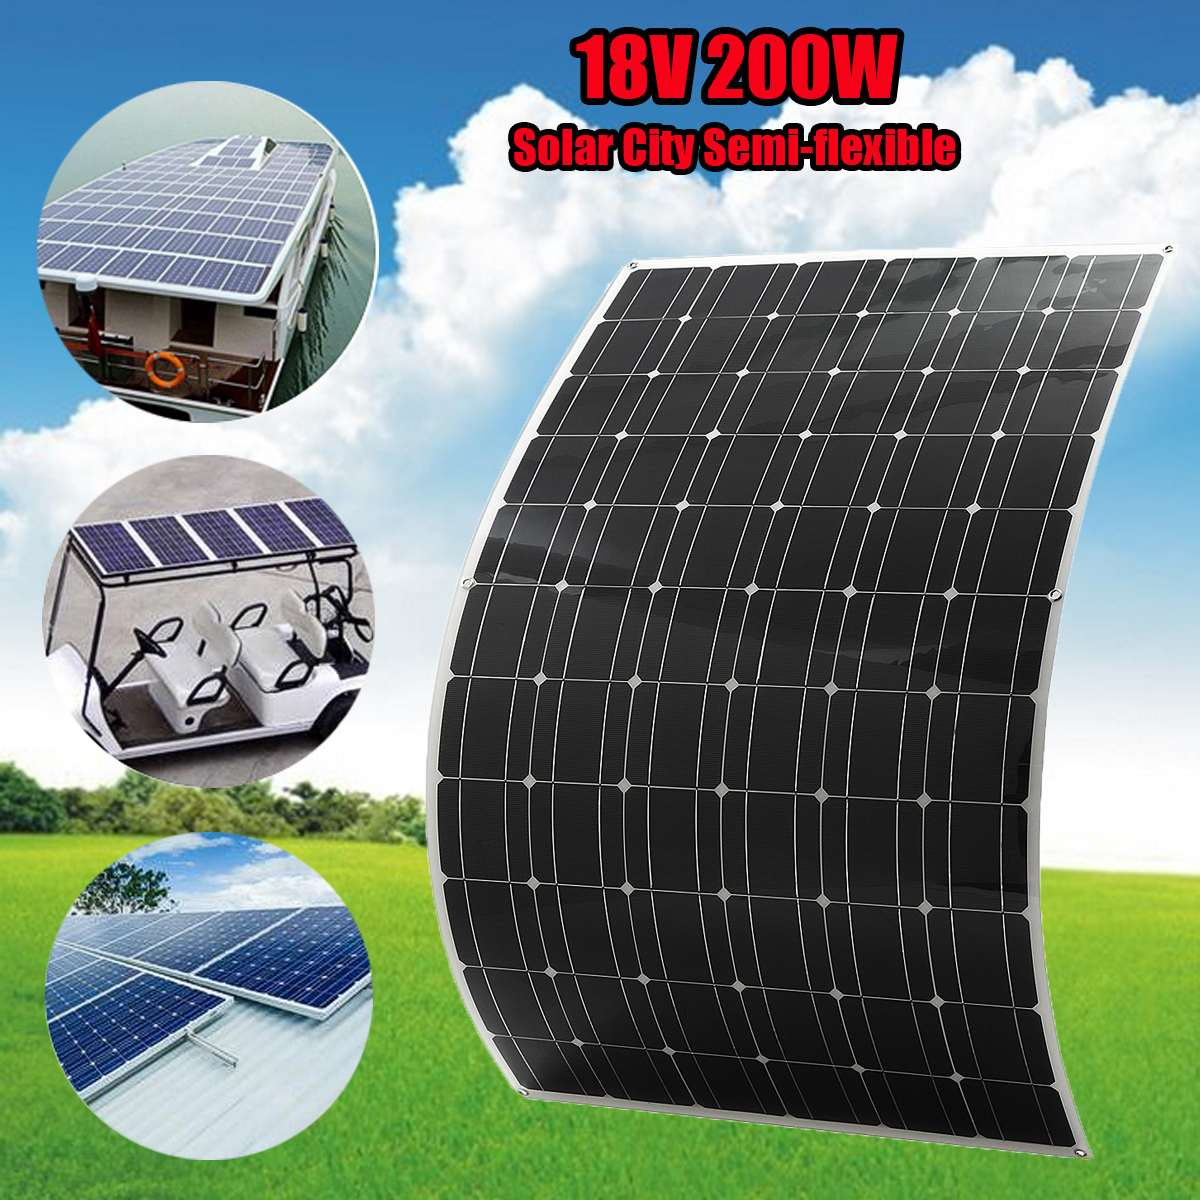 EL-10 200W 12V Semi Flexible Monocrystalline Solar Panel Waterproof High Conversion Efficiency Solar Panel + 1.5m Cable leory 20w 12v solar panel energy semi flexible monocrystalline sun power for rv car boat battery charger solar cells module chip